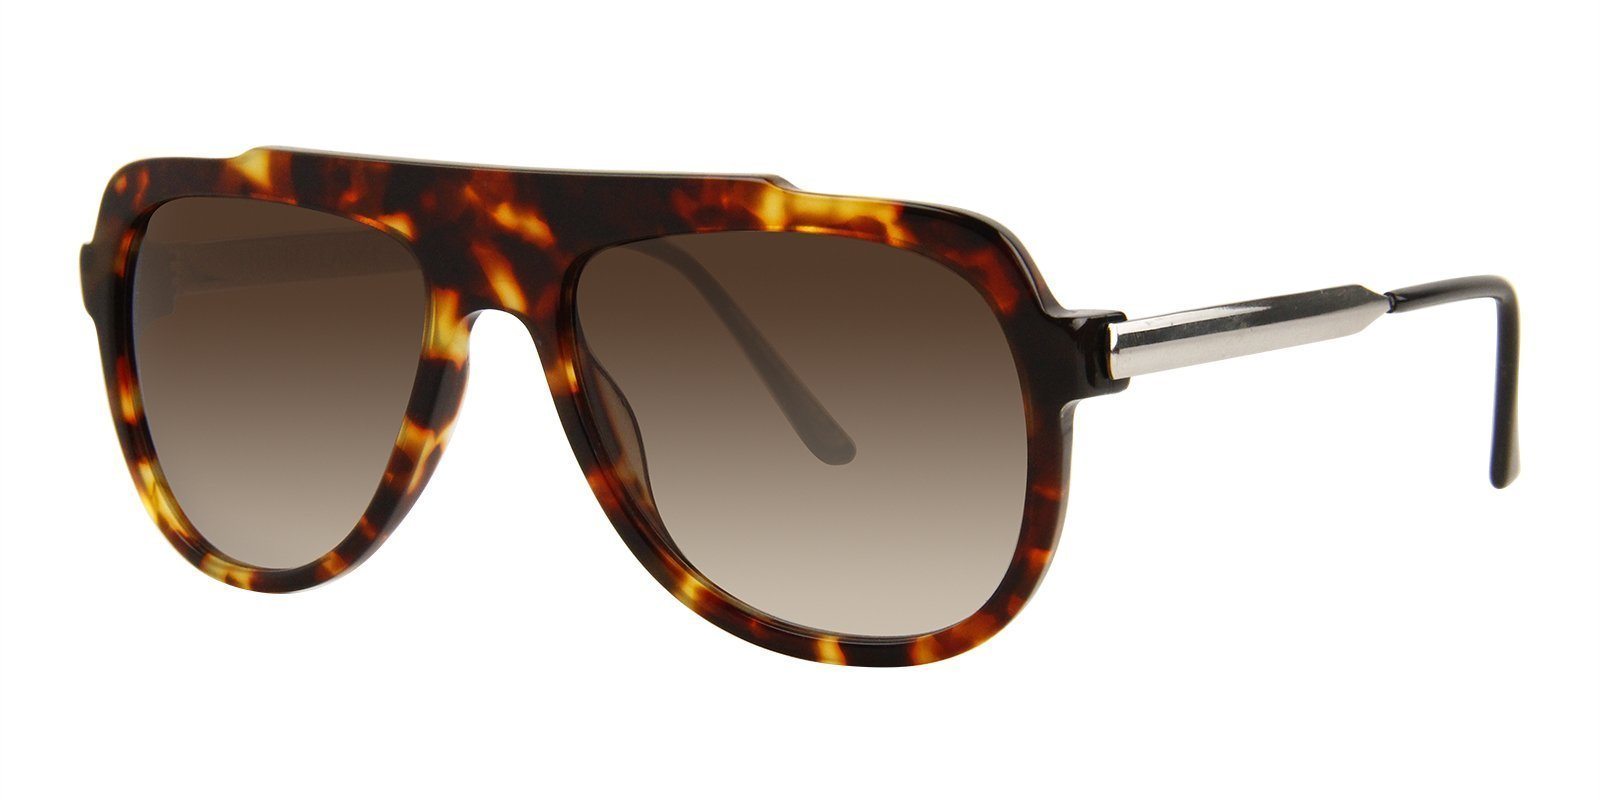 Thierry Lasry - Majesty Tortoise Rectangular Men, Women Sunglasses - 57mm-Sunglasses-Designer Eyes